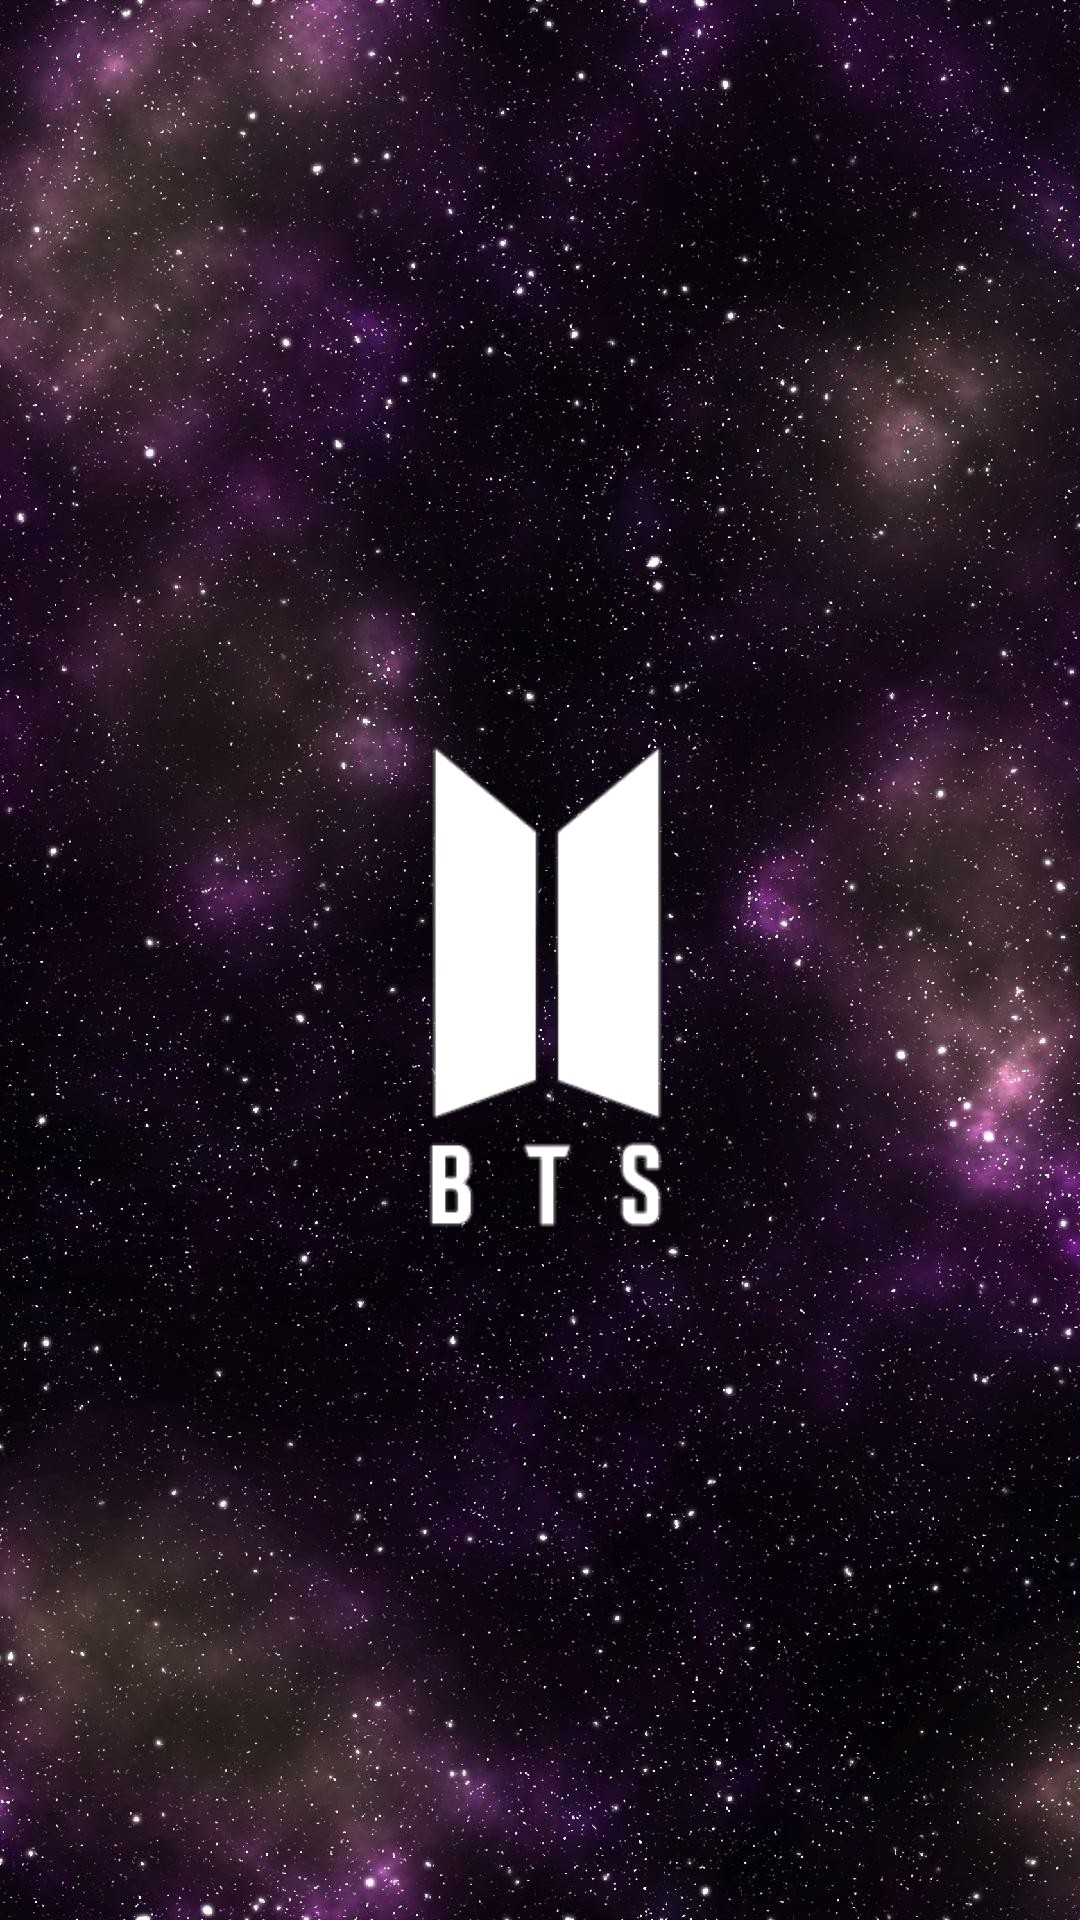 Bts Wallpaper Hinh Nen Bts Galaxy, Hd Wallpapers